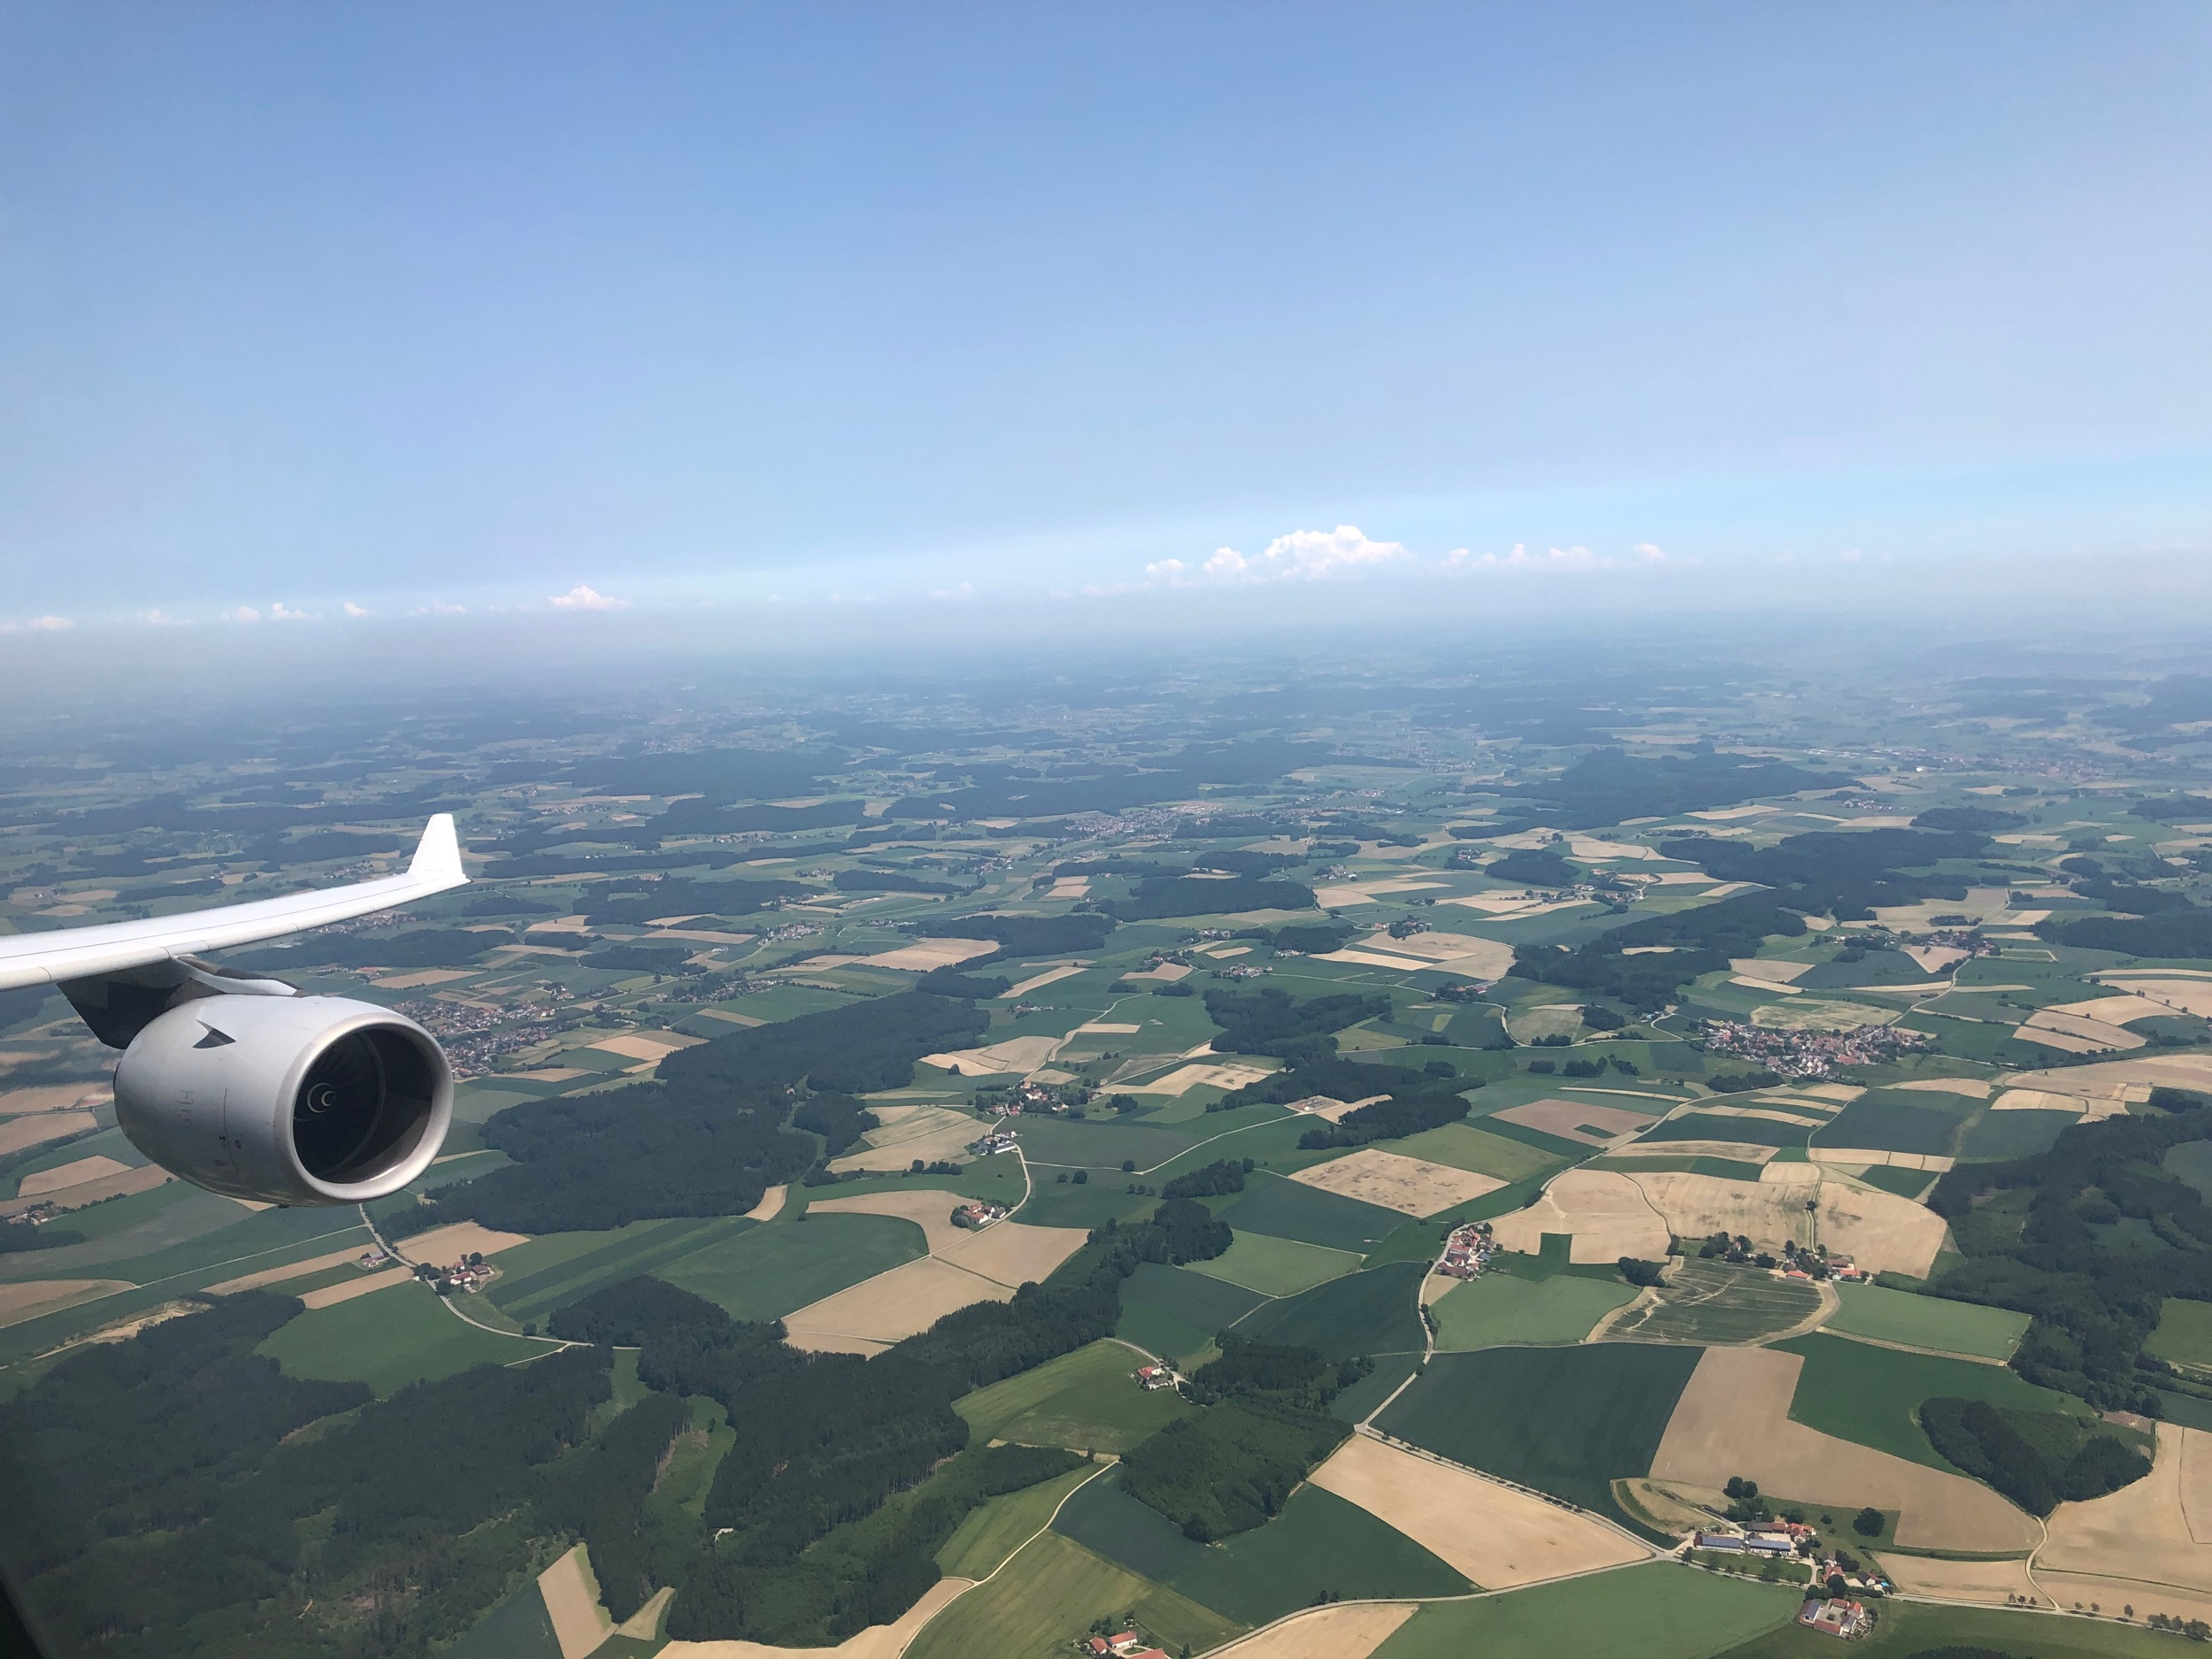 Descending into Munich